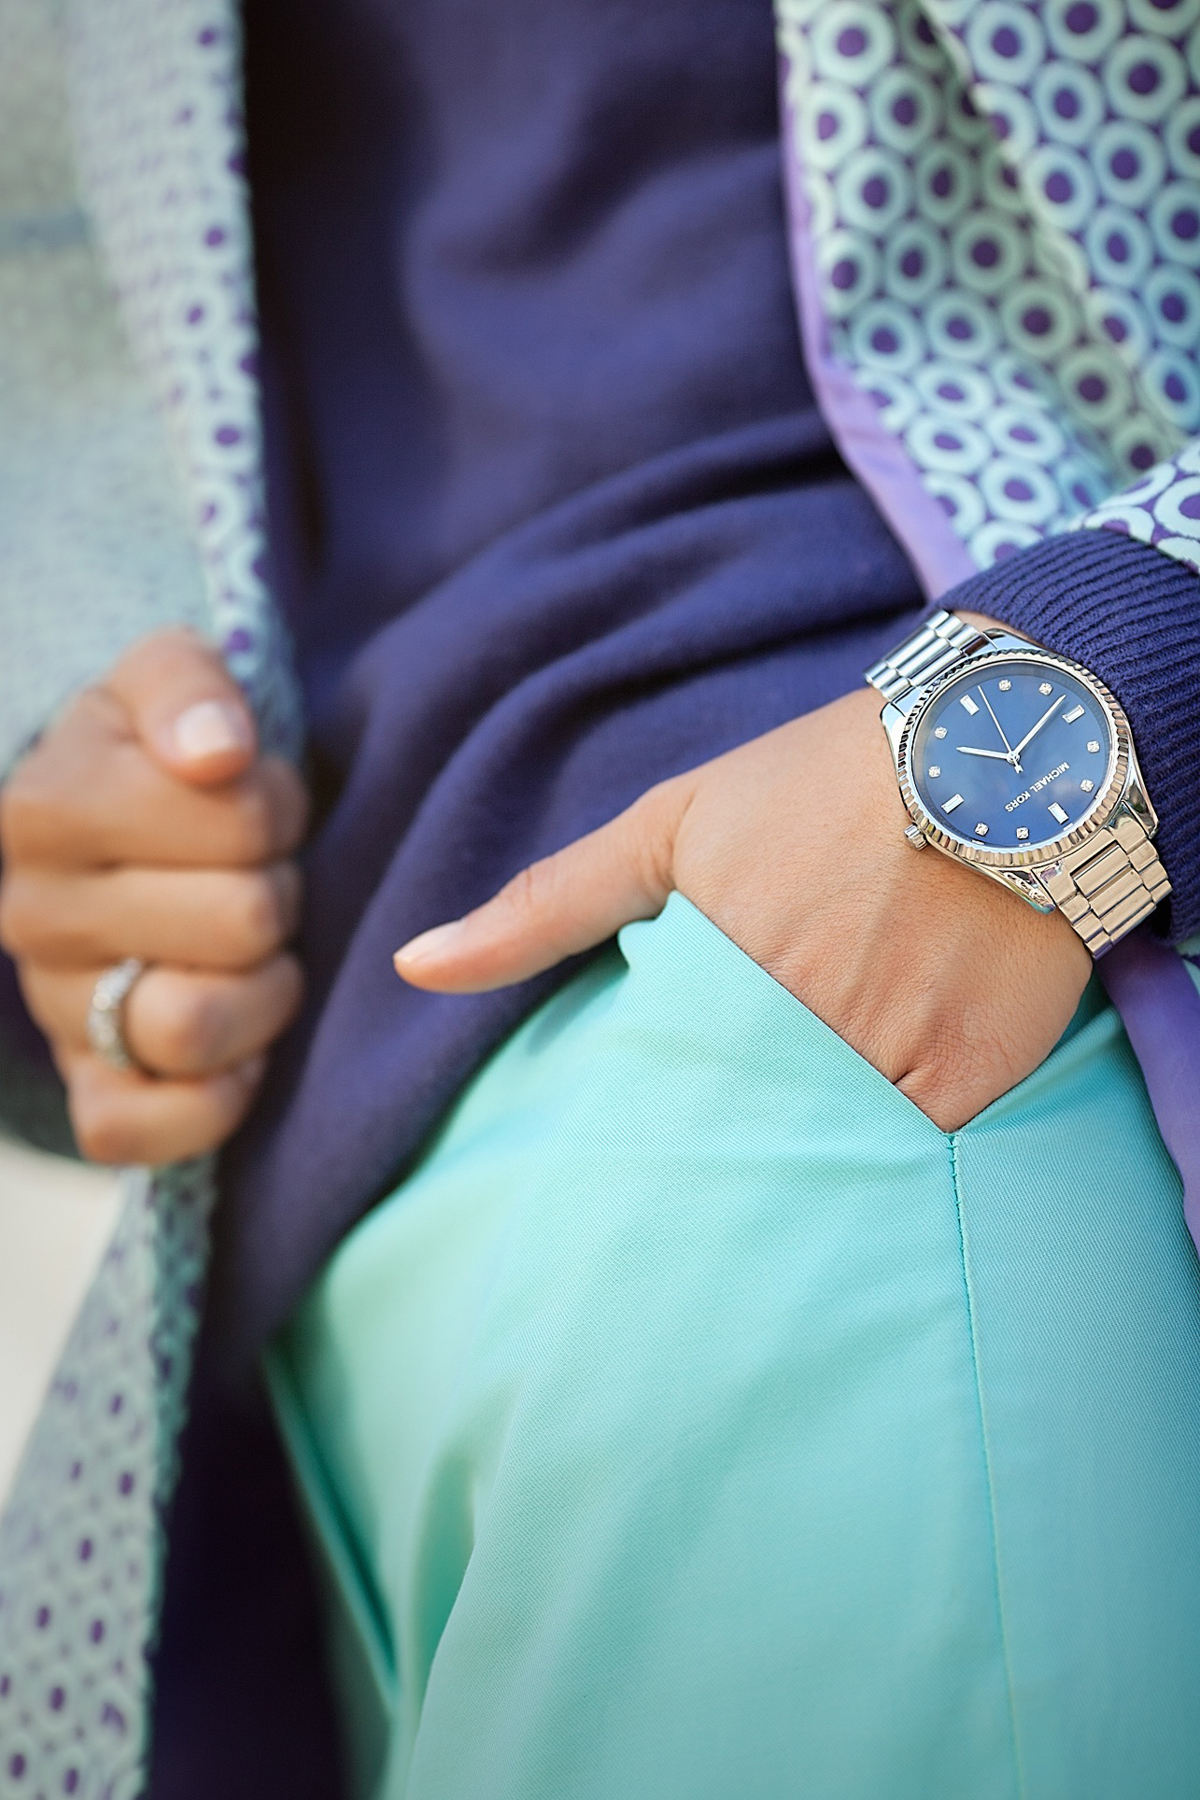 michael kors watch on GalantGirl.com